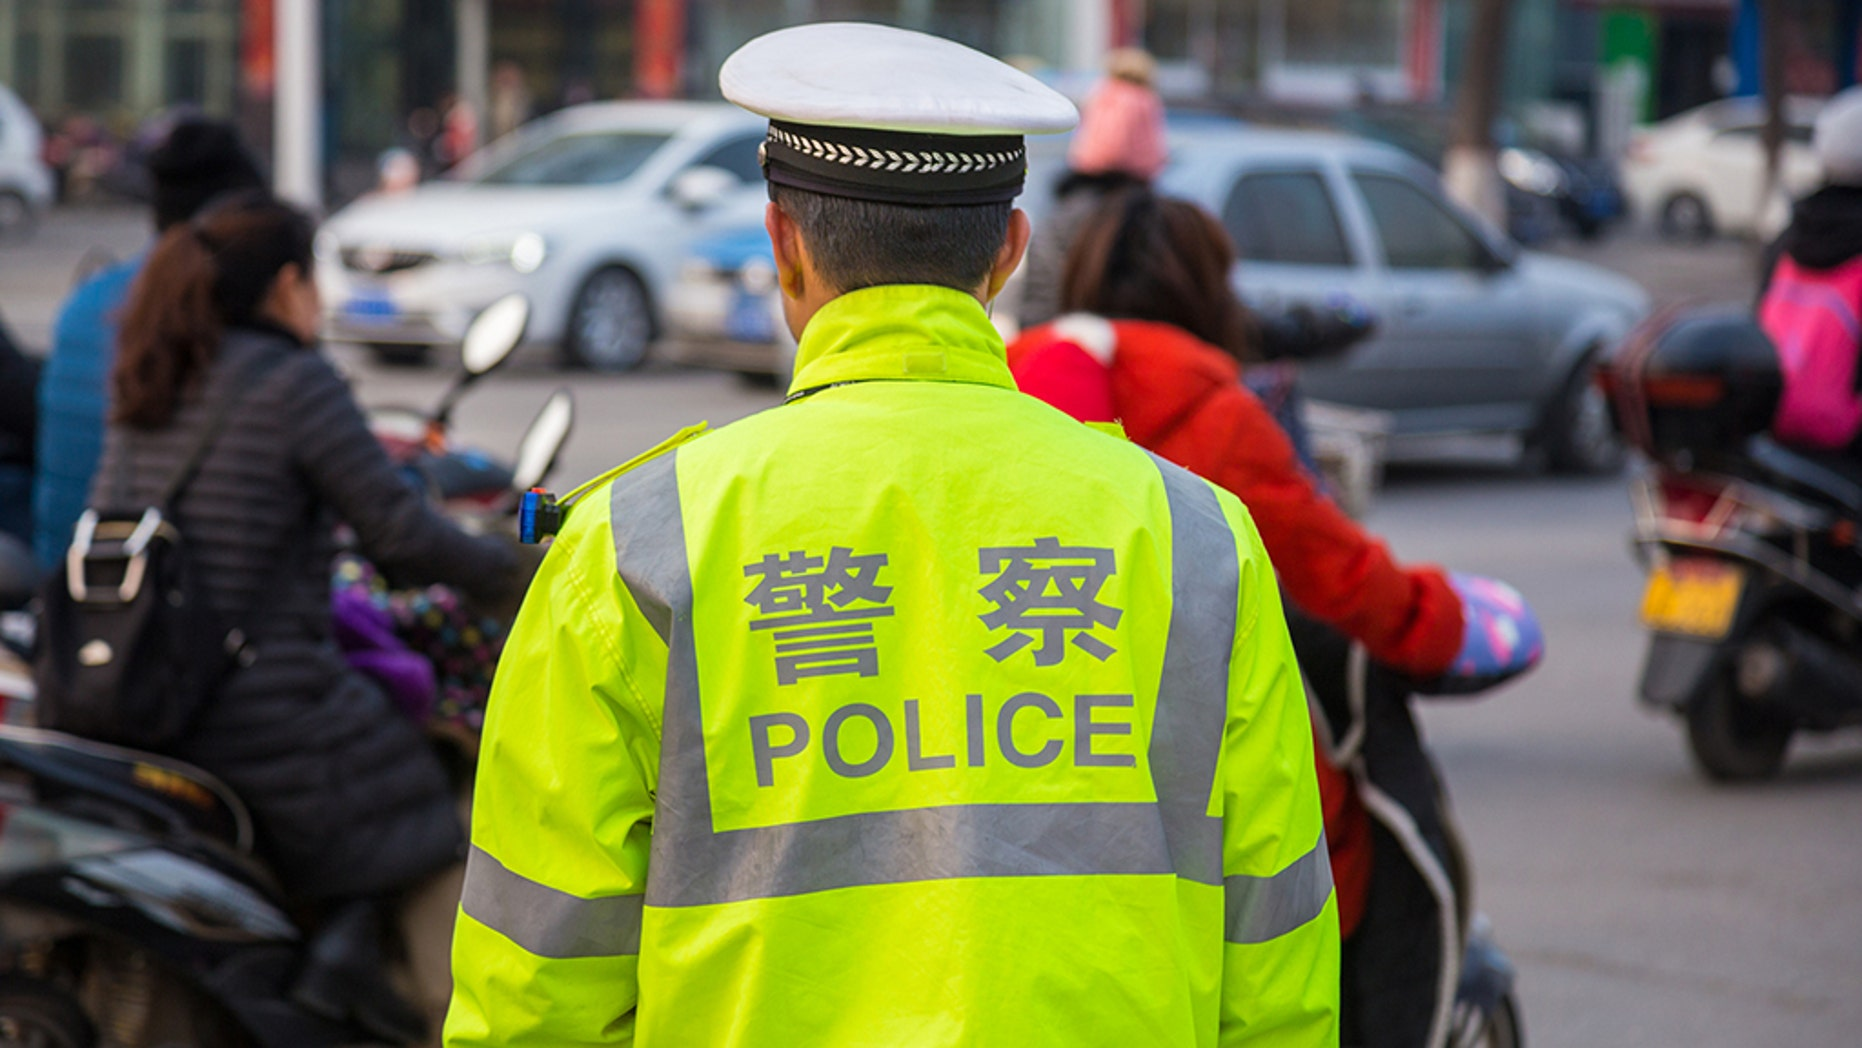 A man wieldingan undisclosedweapon killed one student and injured 11 others when he attacked a group at a technical institute in China. (istock)